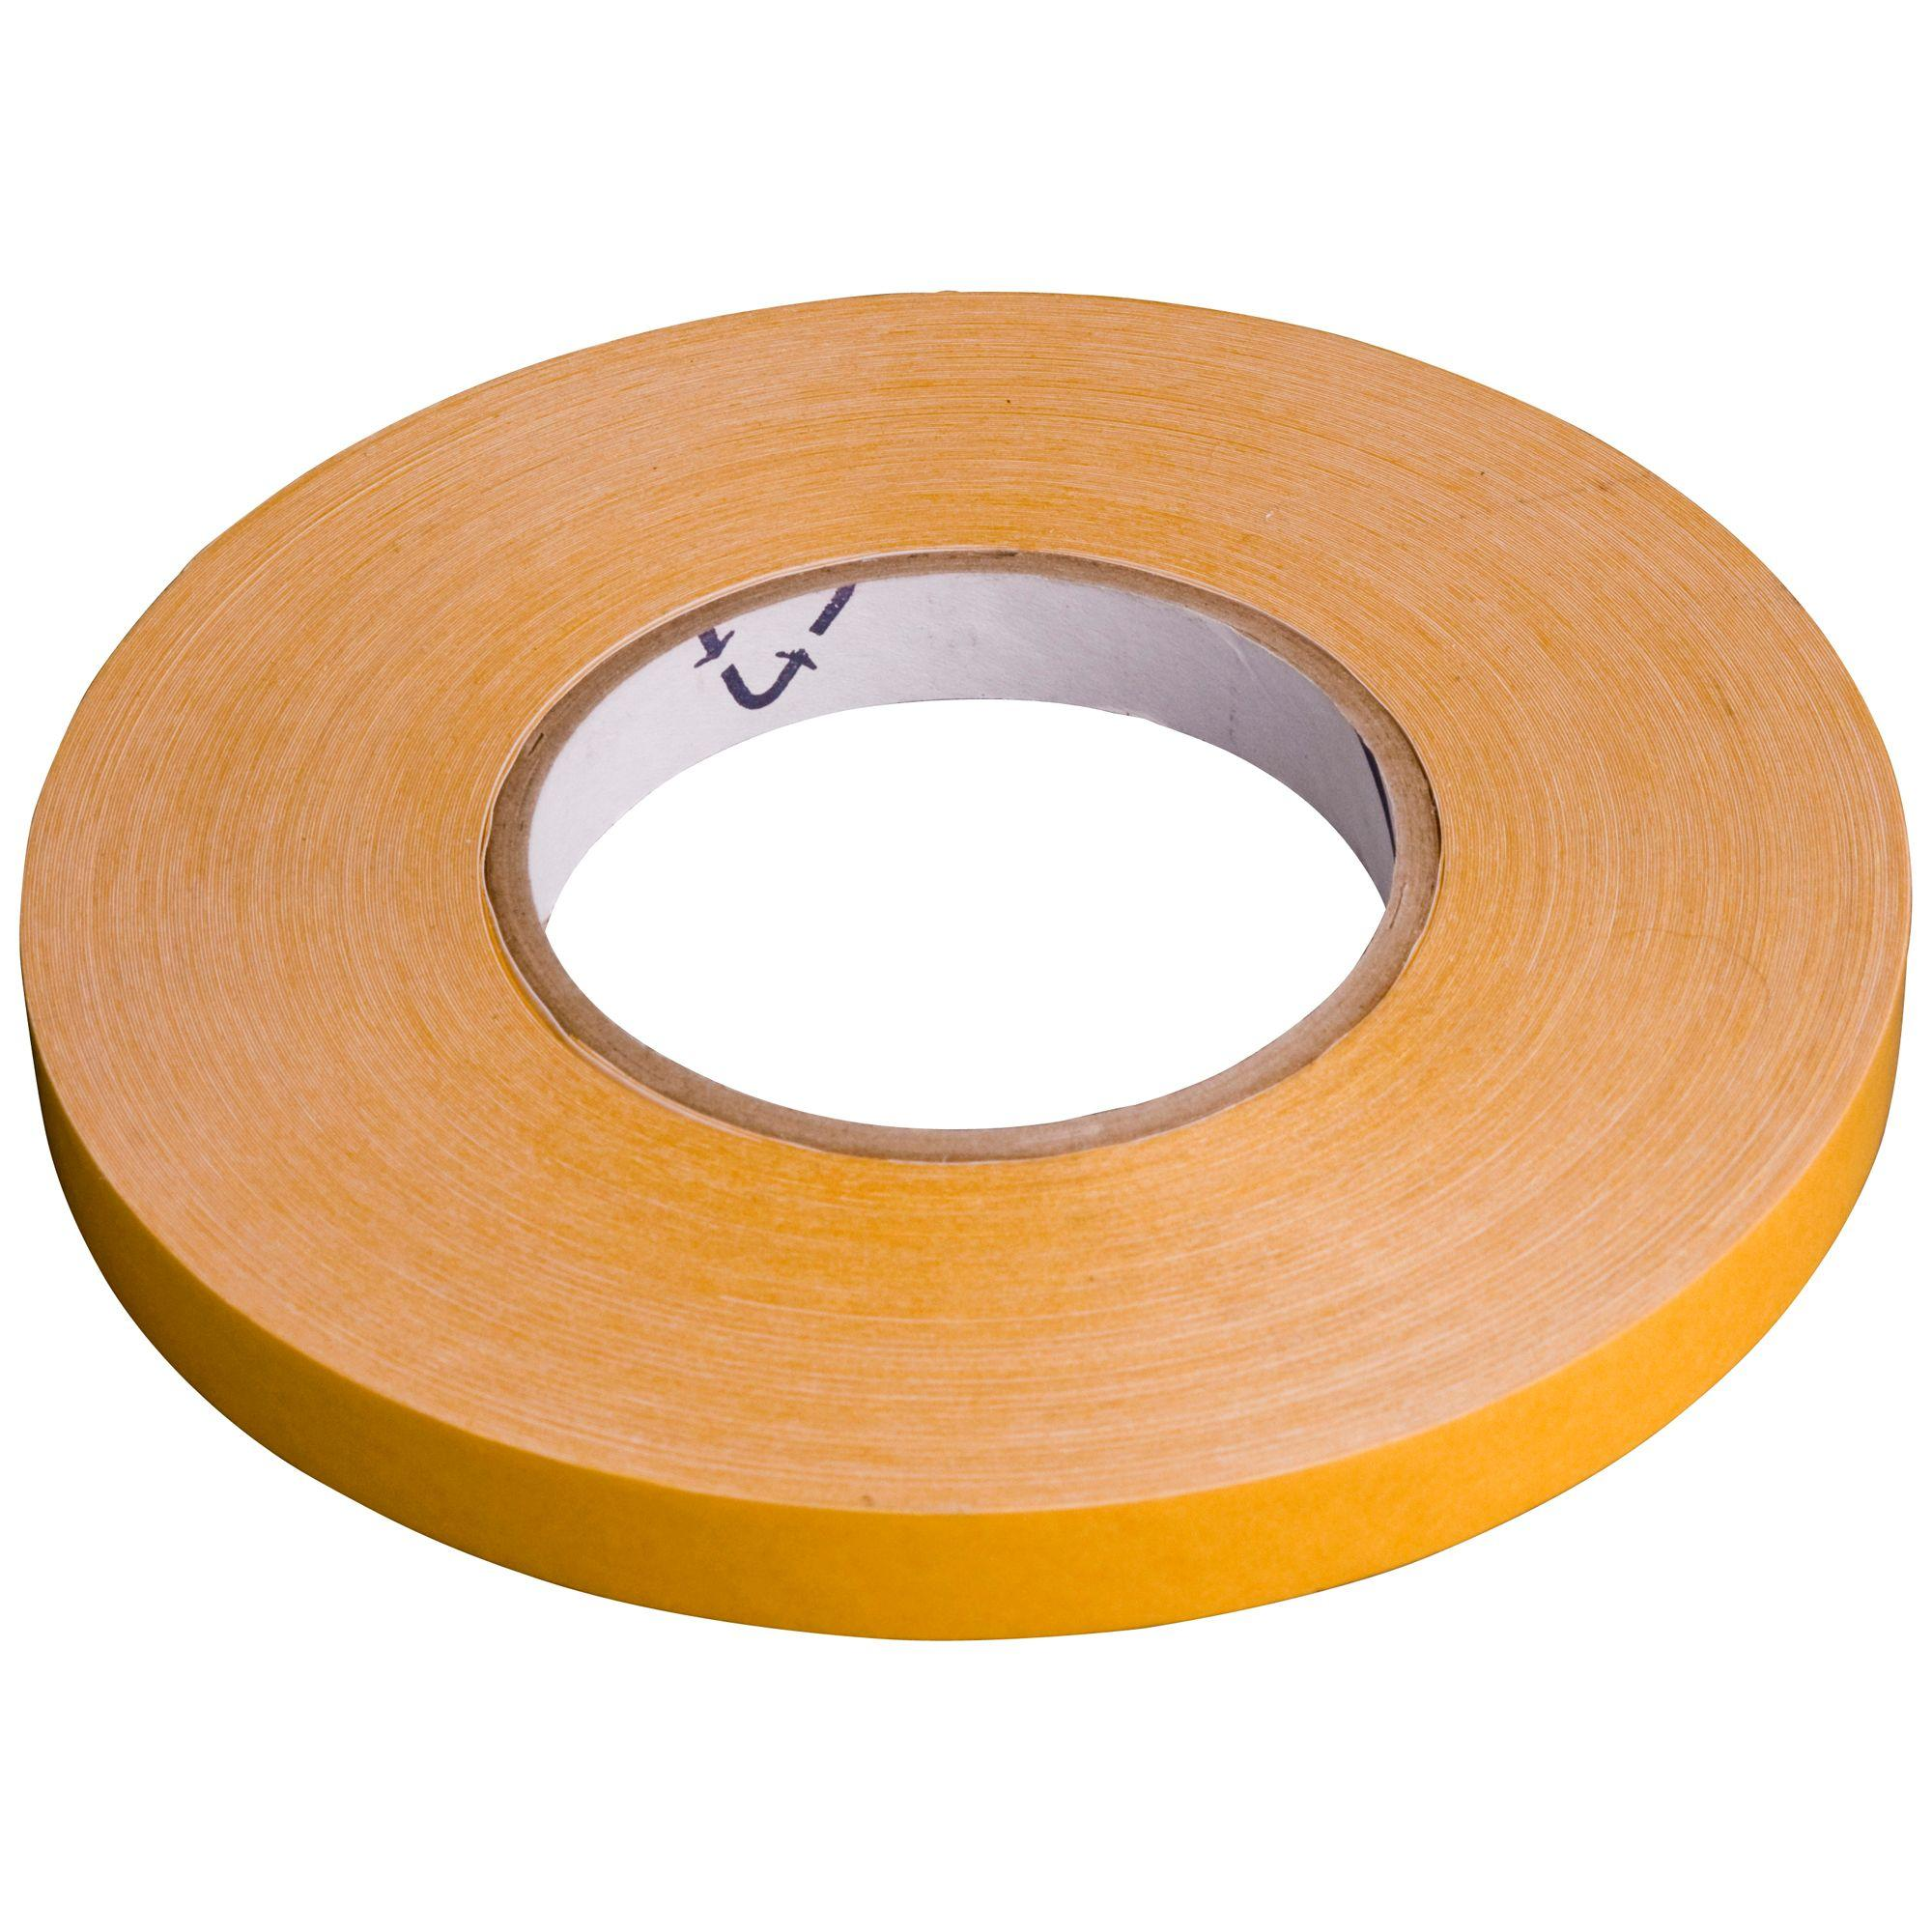 Double-Sided Glue Tape, Super Strong Acrylic Adhesive